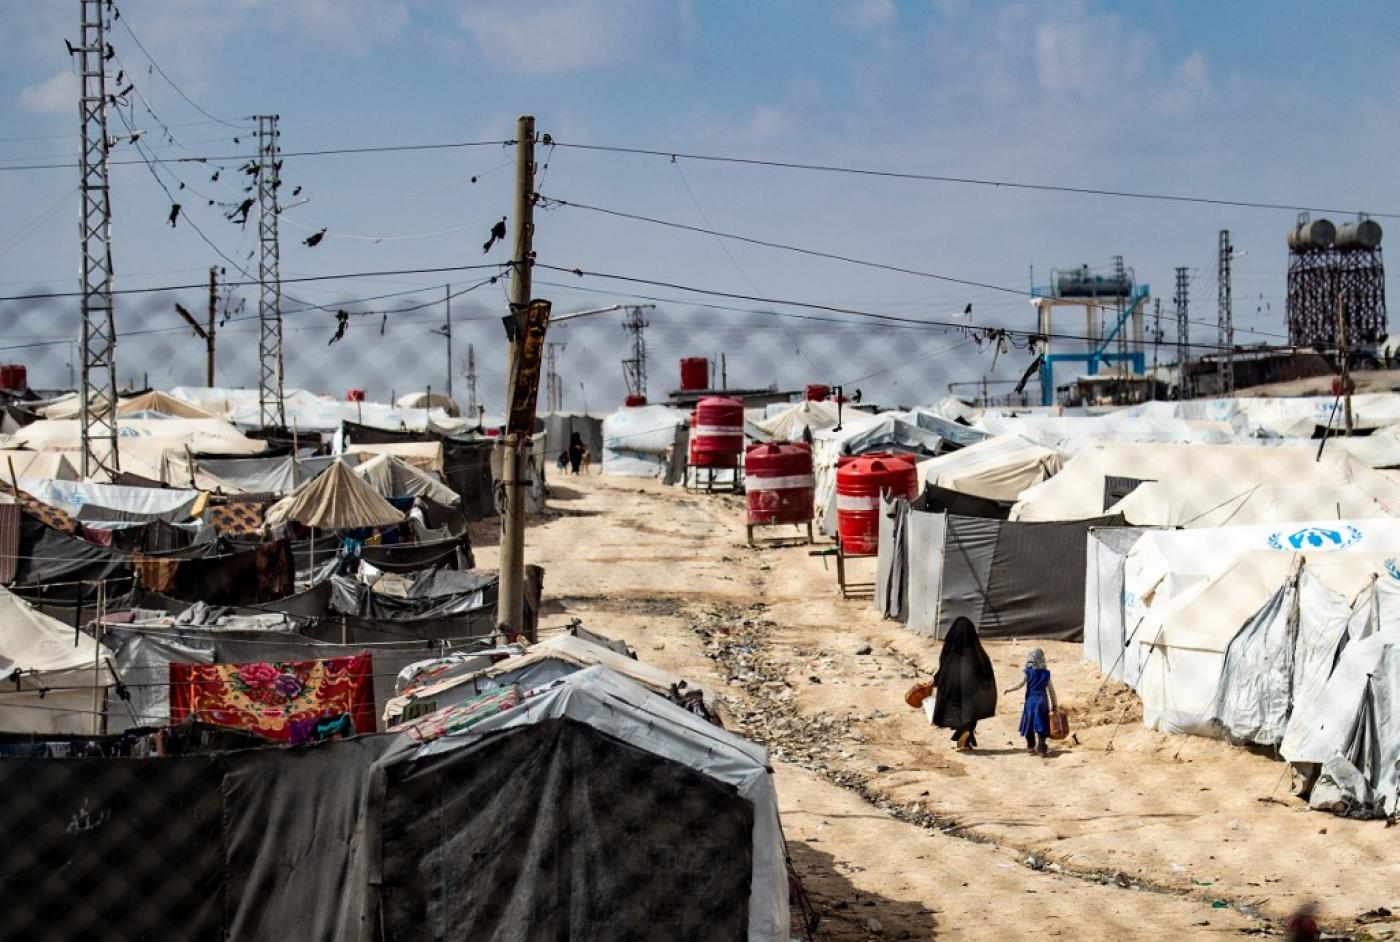 More than 64,000 individuals, mostly women and children, are currently stuck in detention camps in Syria.